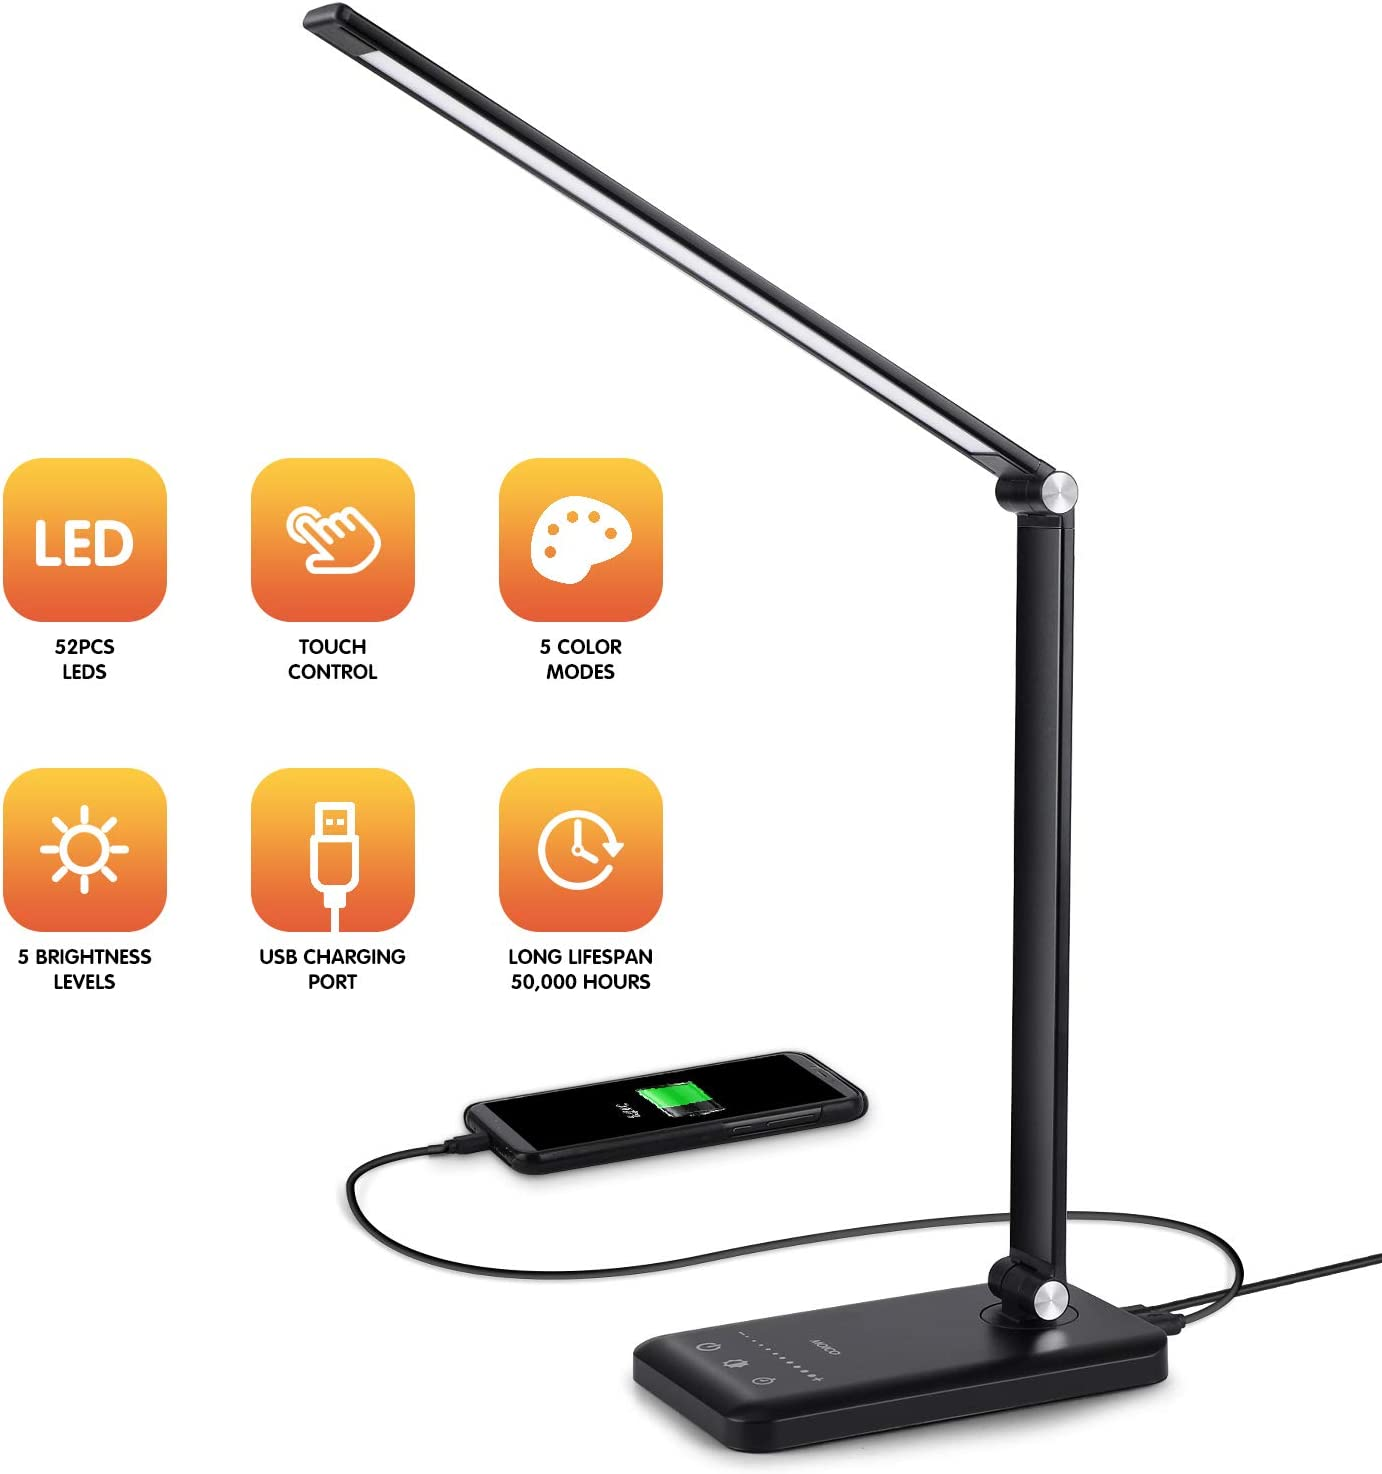 LED Desk Lamp - Dimmable Table Lamp with Eye-Caring of 5 Color Modes and 5 Brightness Levels, LED Office Lamp with USB Charging Port, Timer/Memory Function Lamp for Working, Reading, Sleeping